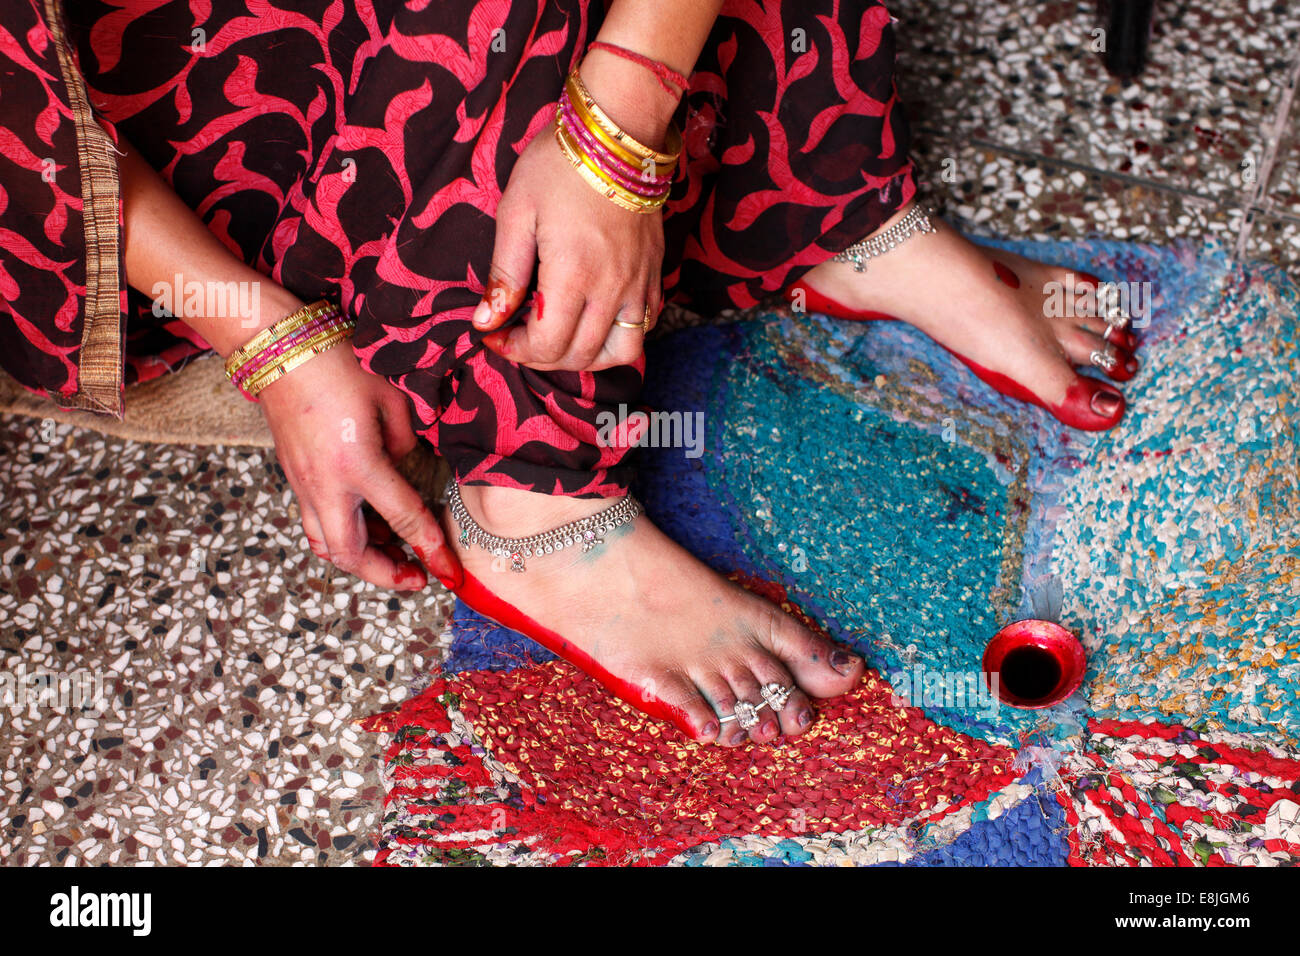 Woman applying red dye on her soles - Stock Image